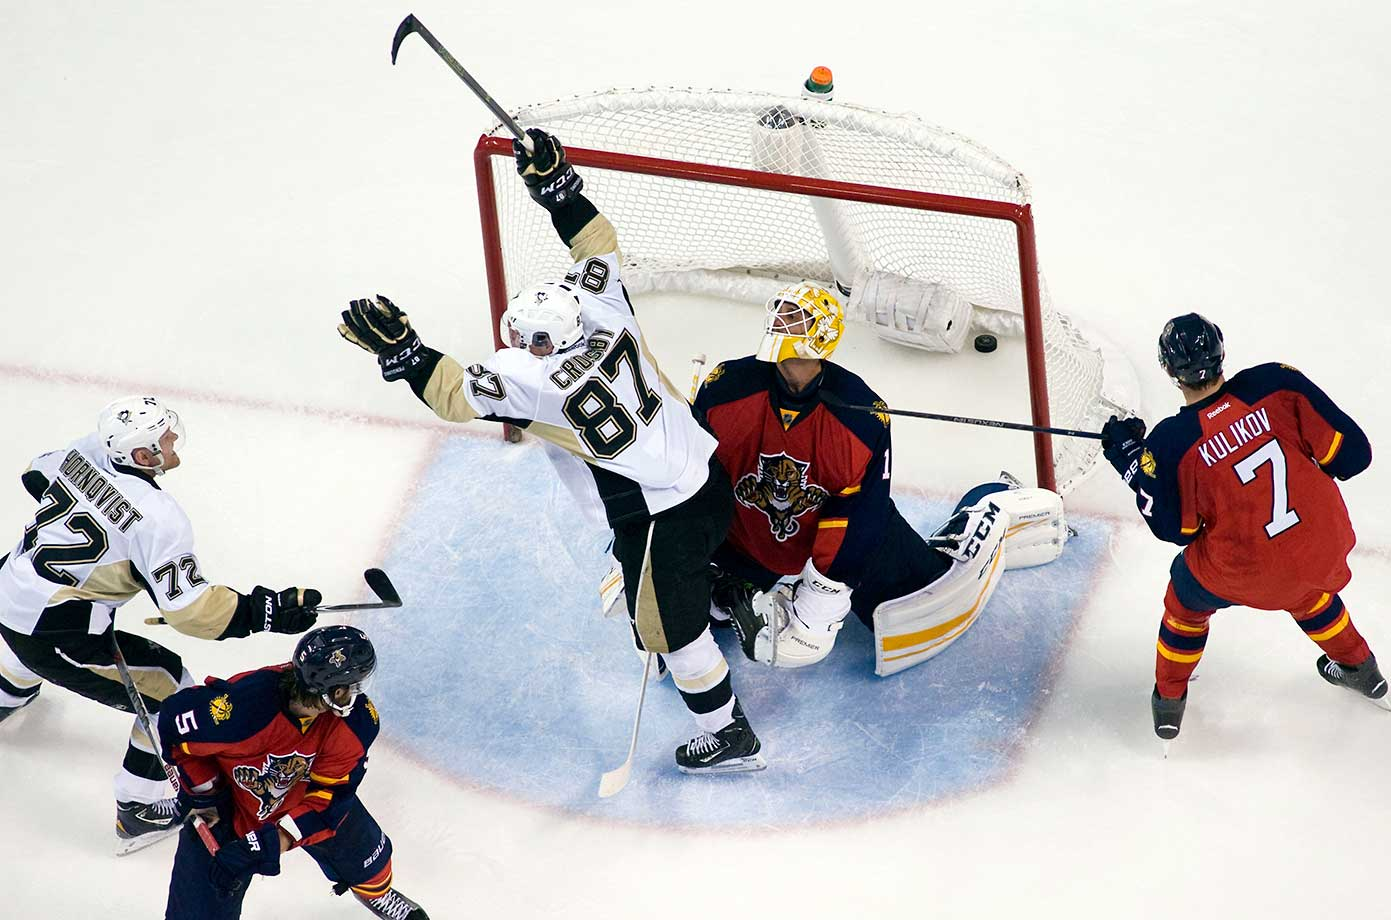 Sidney Crosby of Pittsburgh celebrates his goal to tie the game against the Florida Panthers.